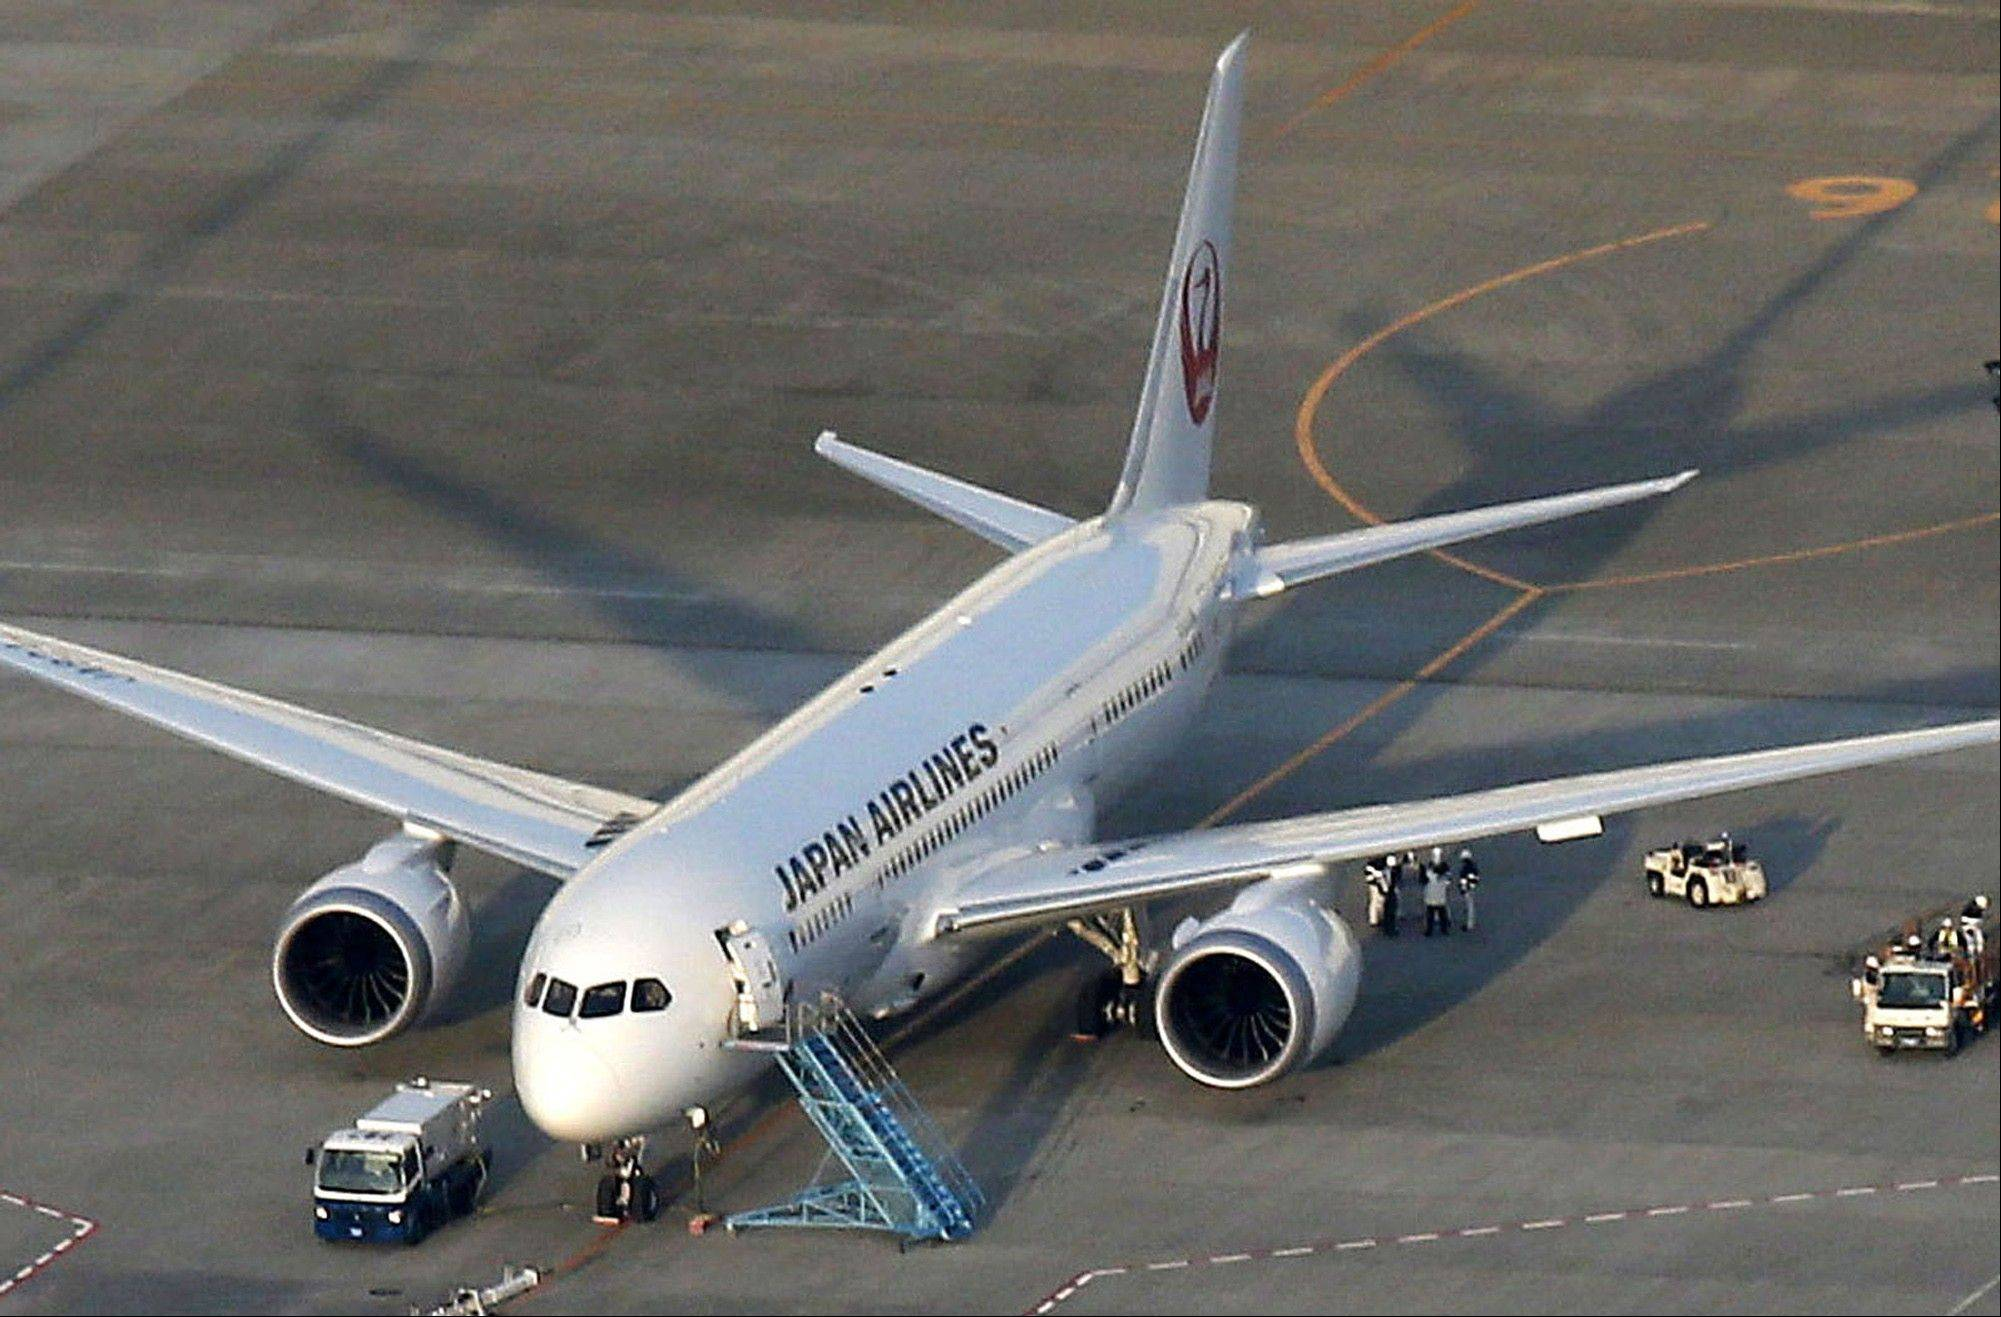 A Japan Airlines 787, from which fuel spilled at Boston�s Logan International Airport last Tuesday, sits on the tarmac at Narita Airport in Narita, east of Tokyo, Sunday. Narita airport officials said JAL reported a 100-liter fuel leak from a filler on the 787 during inspection following recent spate of problems.